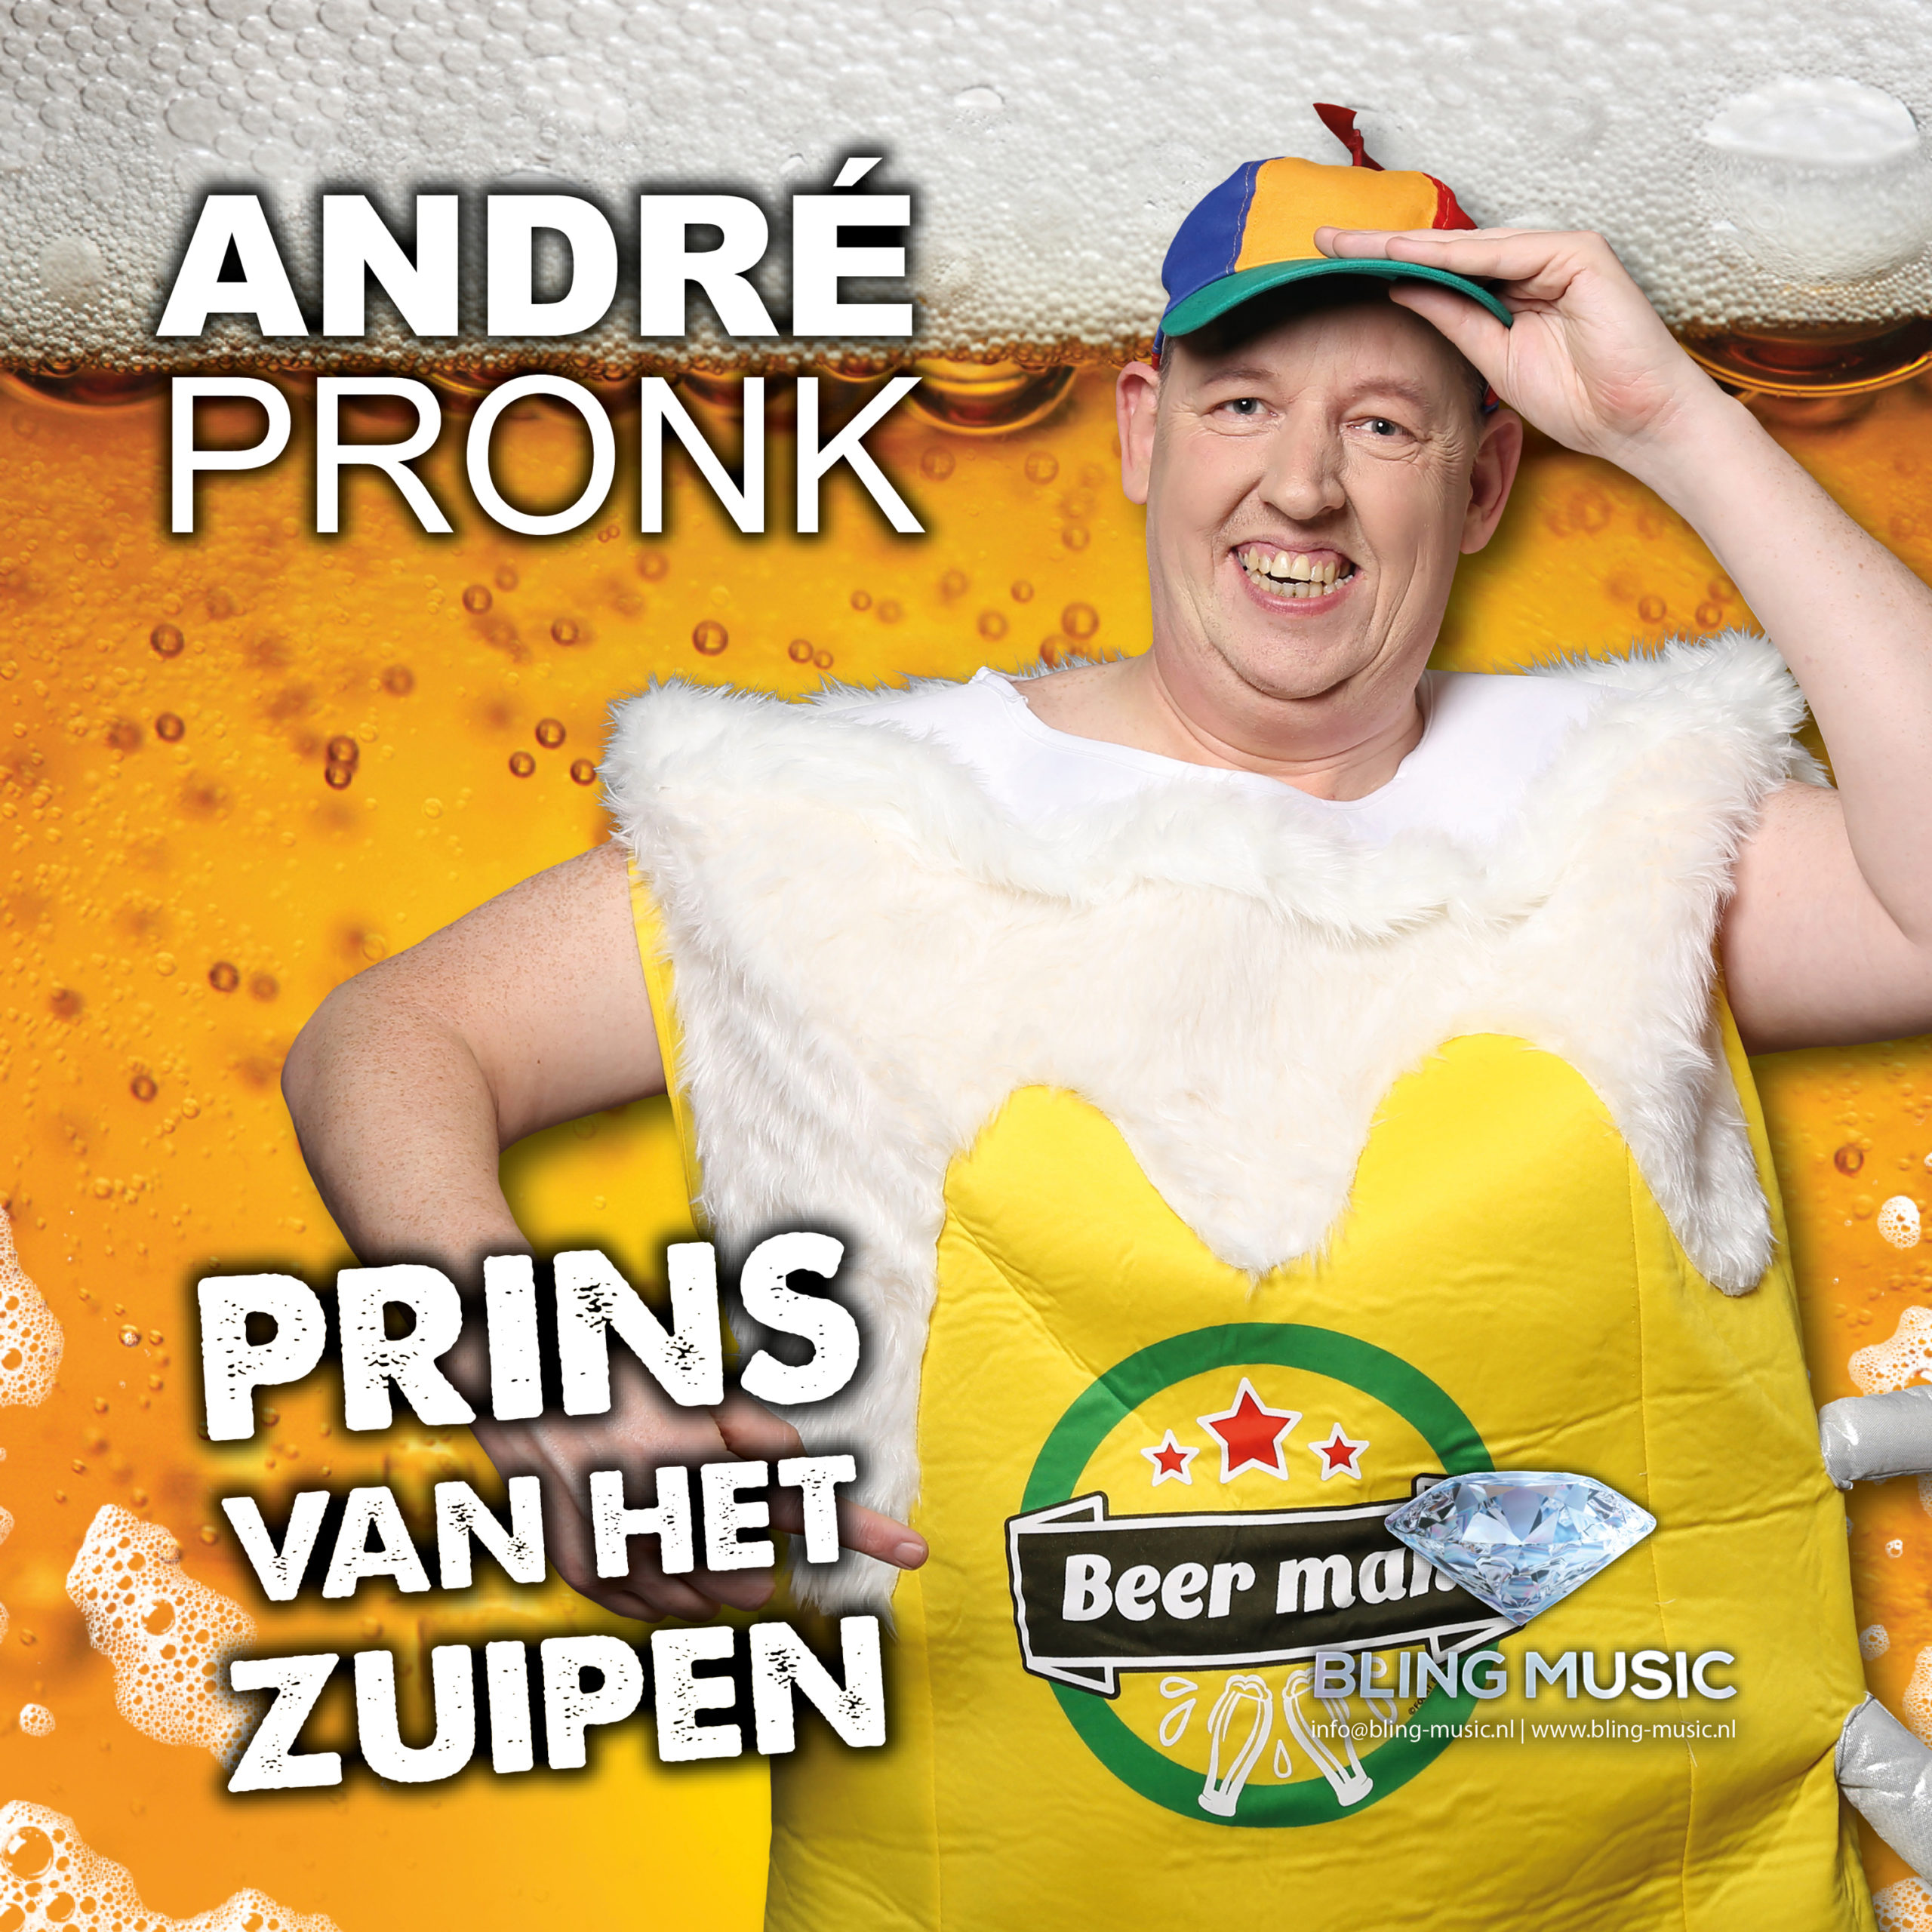 Andre Pronk